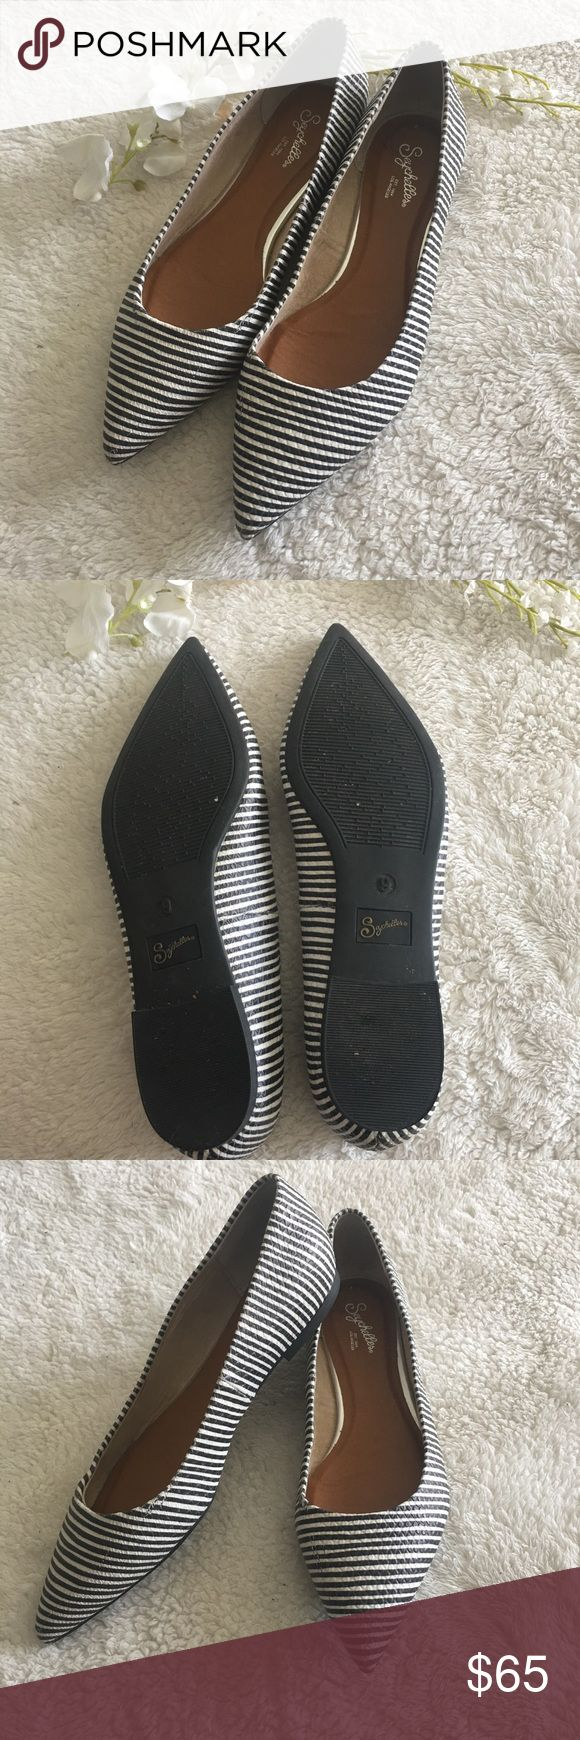 FLASH SALE❗️Anthropologie Seychelles Flat * In excellent condition! * Leather upper * Man made materials  * Beautiful textured stripe pattern  * Cushioned insole * No trades, please *  1016sw Anthropologie Shoes Flats & Loafers